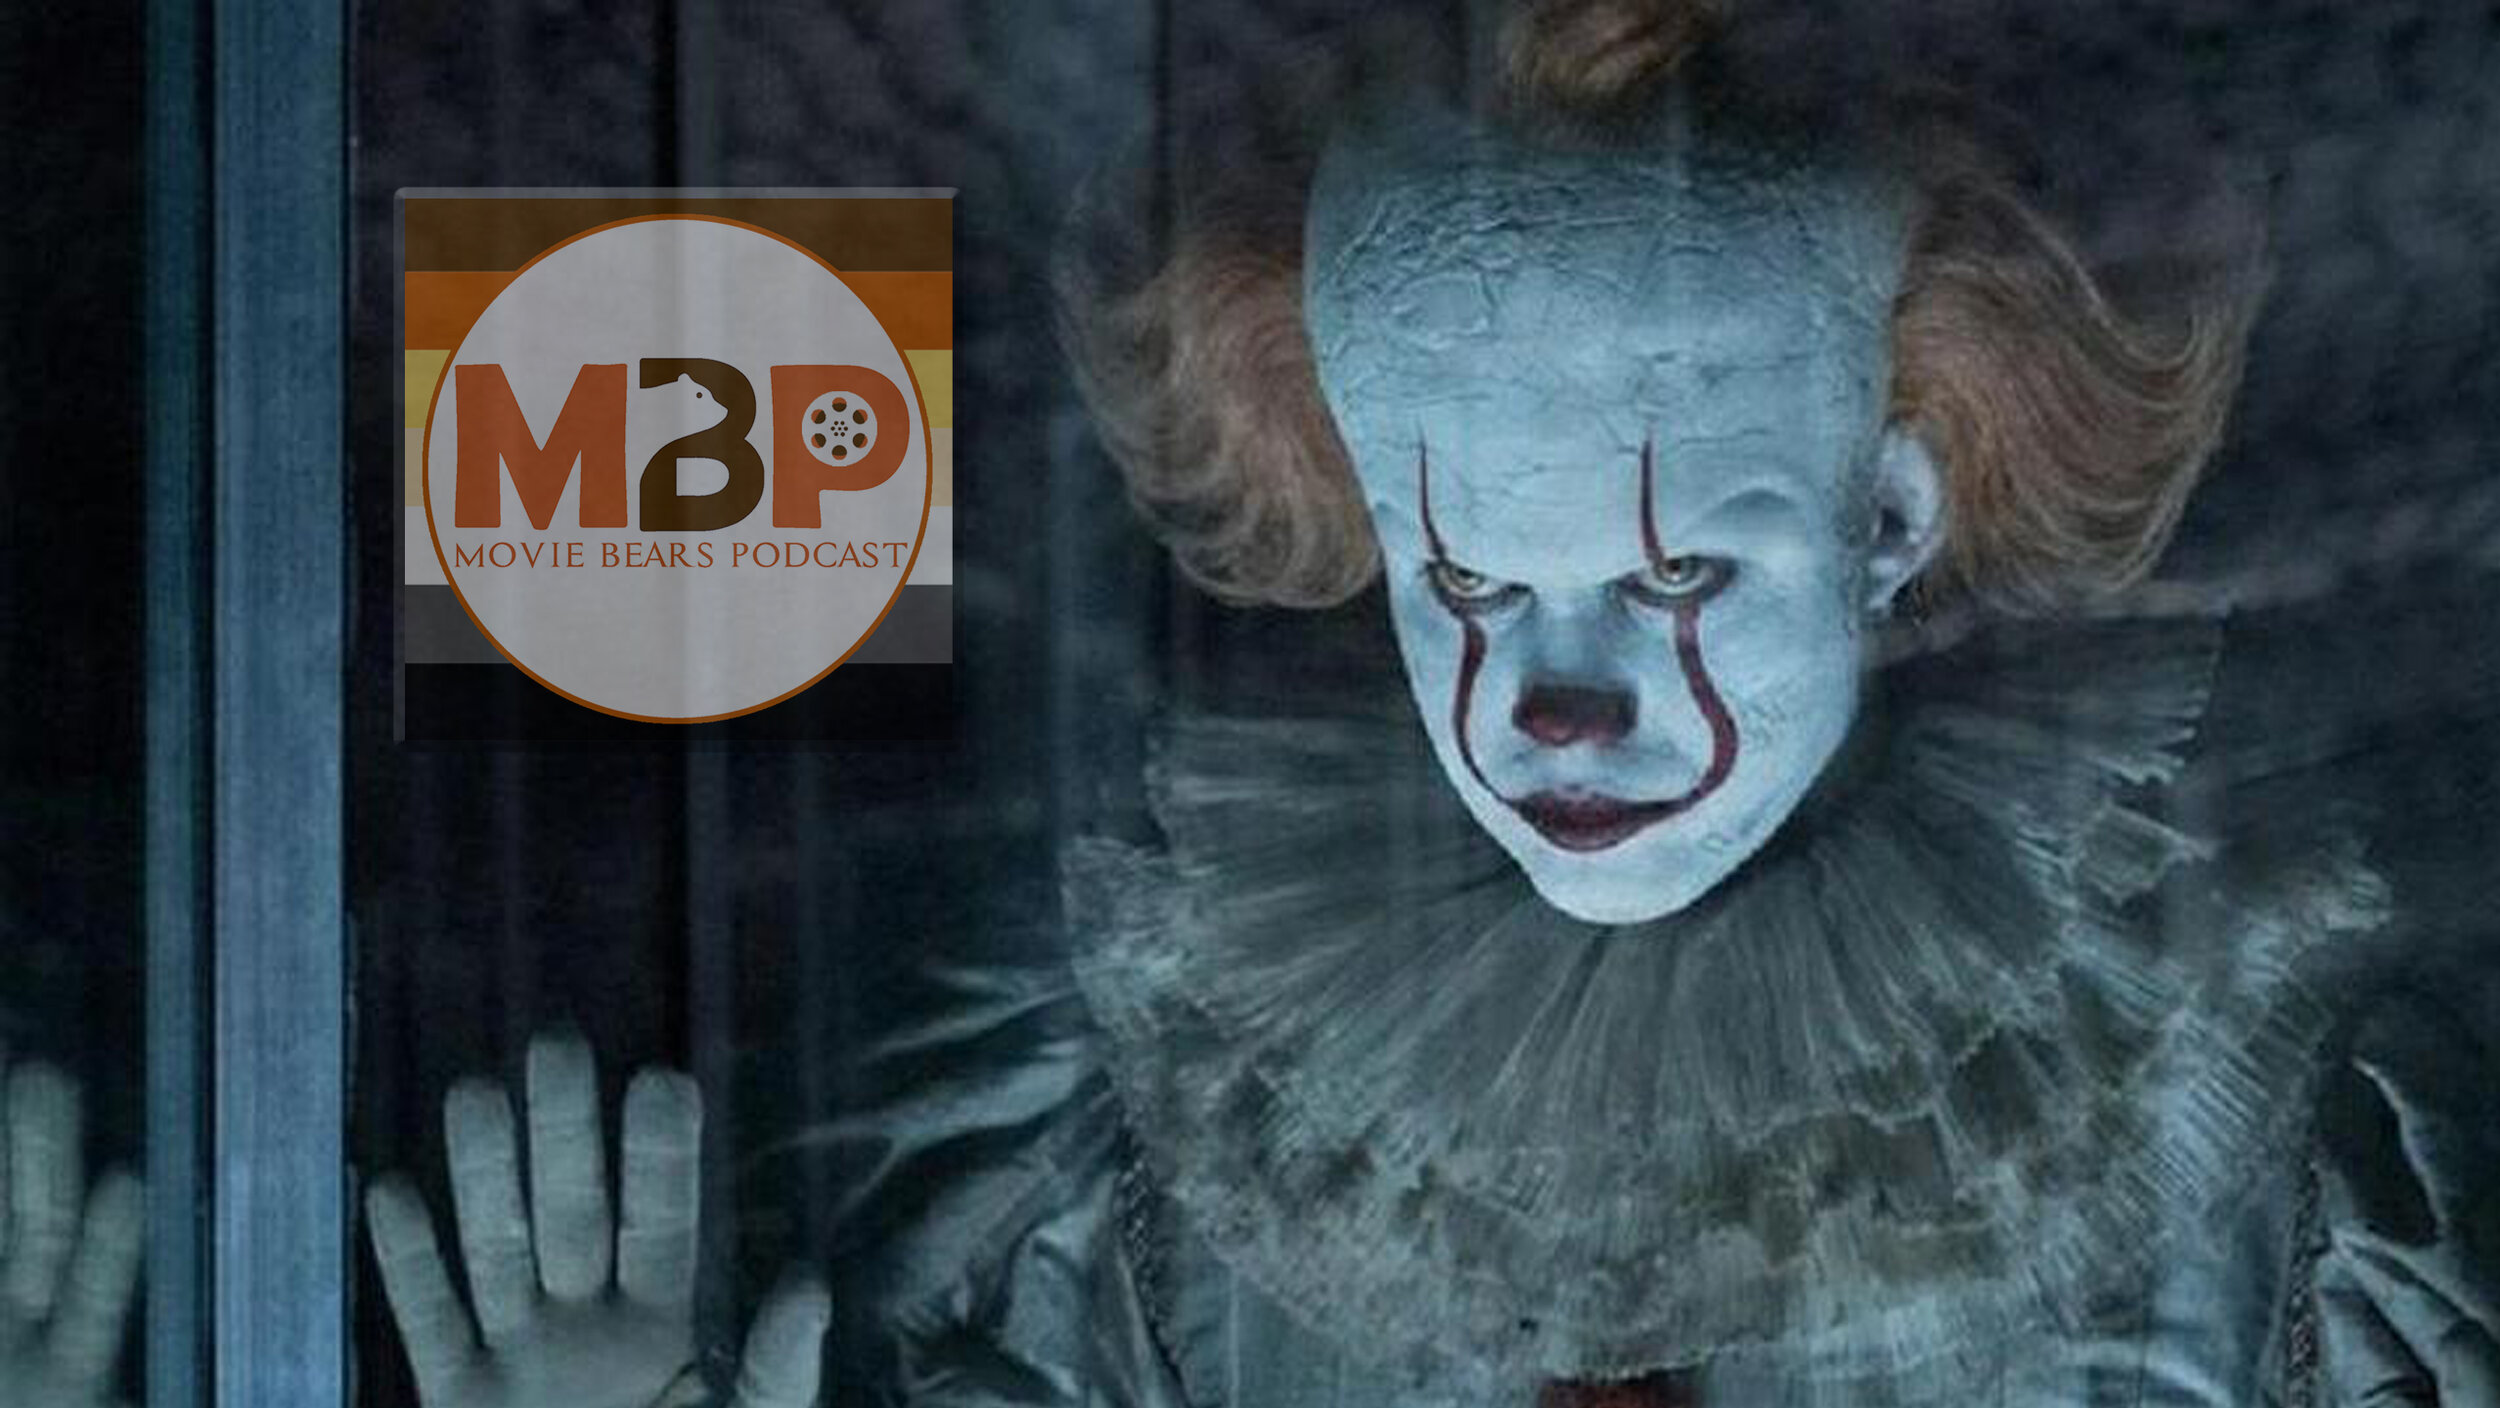 MBP e337 - 'IT Chapter Two' (9/10/19)    We're heading back to Derry, Maine tonight to join the Losers for their round two bout with Pennywise the clown, 27 years later (even though it's only been about 2 years, really). We're also bringing along a special guest and friend of the podcast, Sammy W. That's right, we're reviewing 'IT CHAPTER 2', and if you feel like listening to what we all thought of the conclusion to this horror saga, then you'll float too!